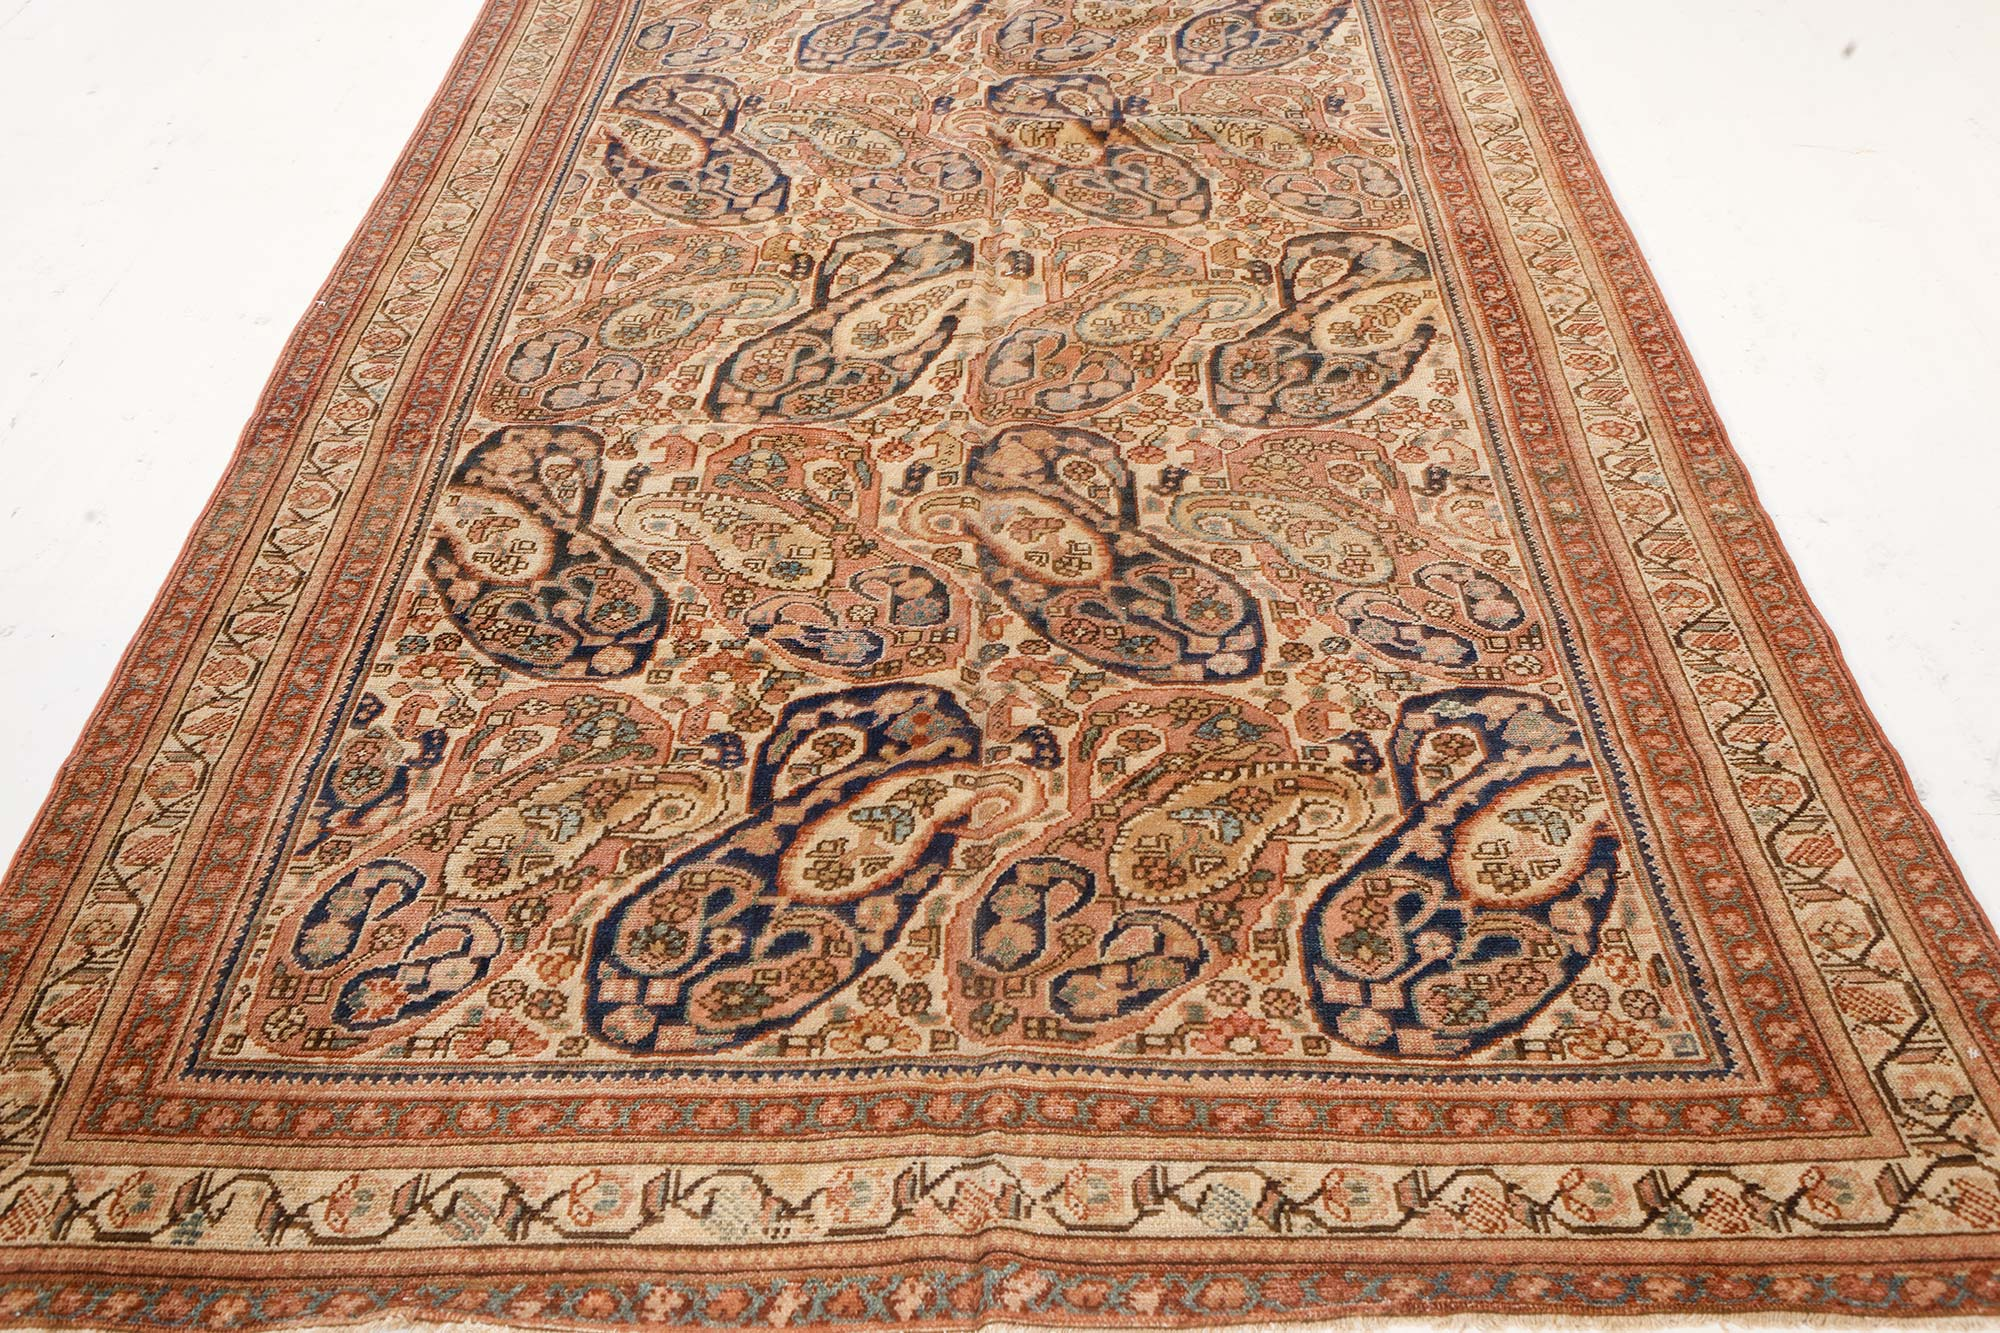 Antique Persian Malyer Handwoven Wool Rug Bb7458 By Dlb